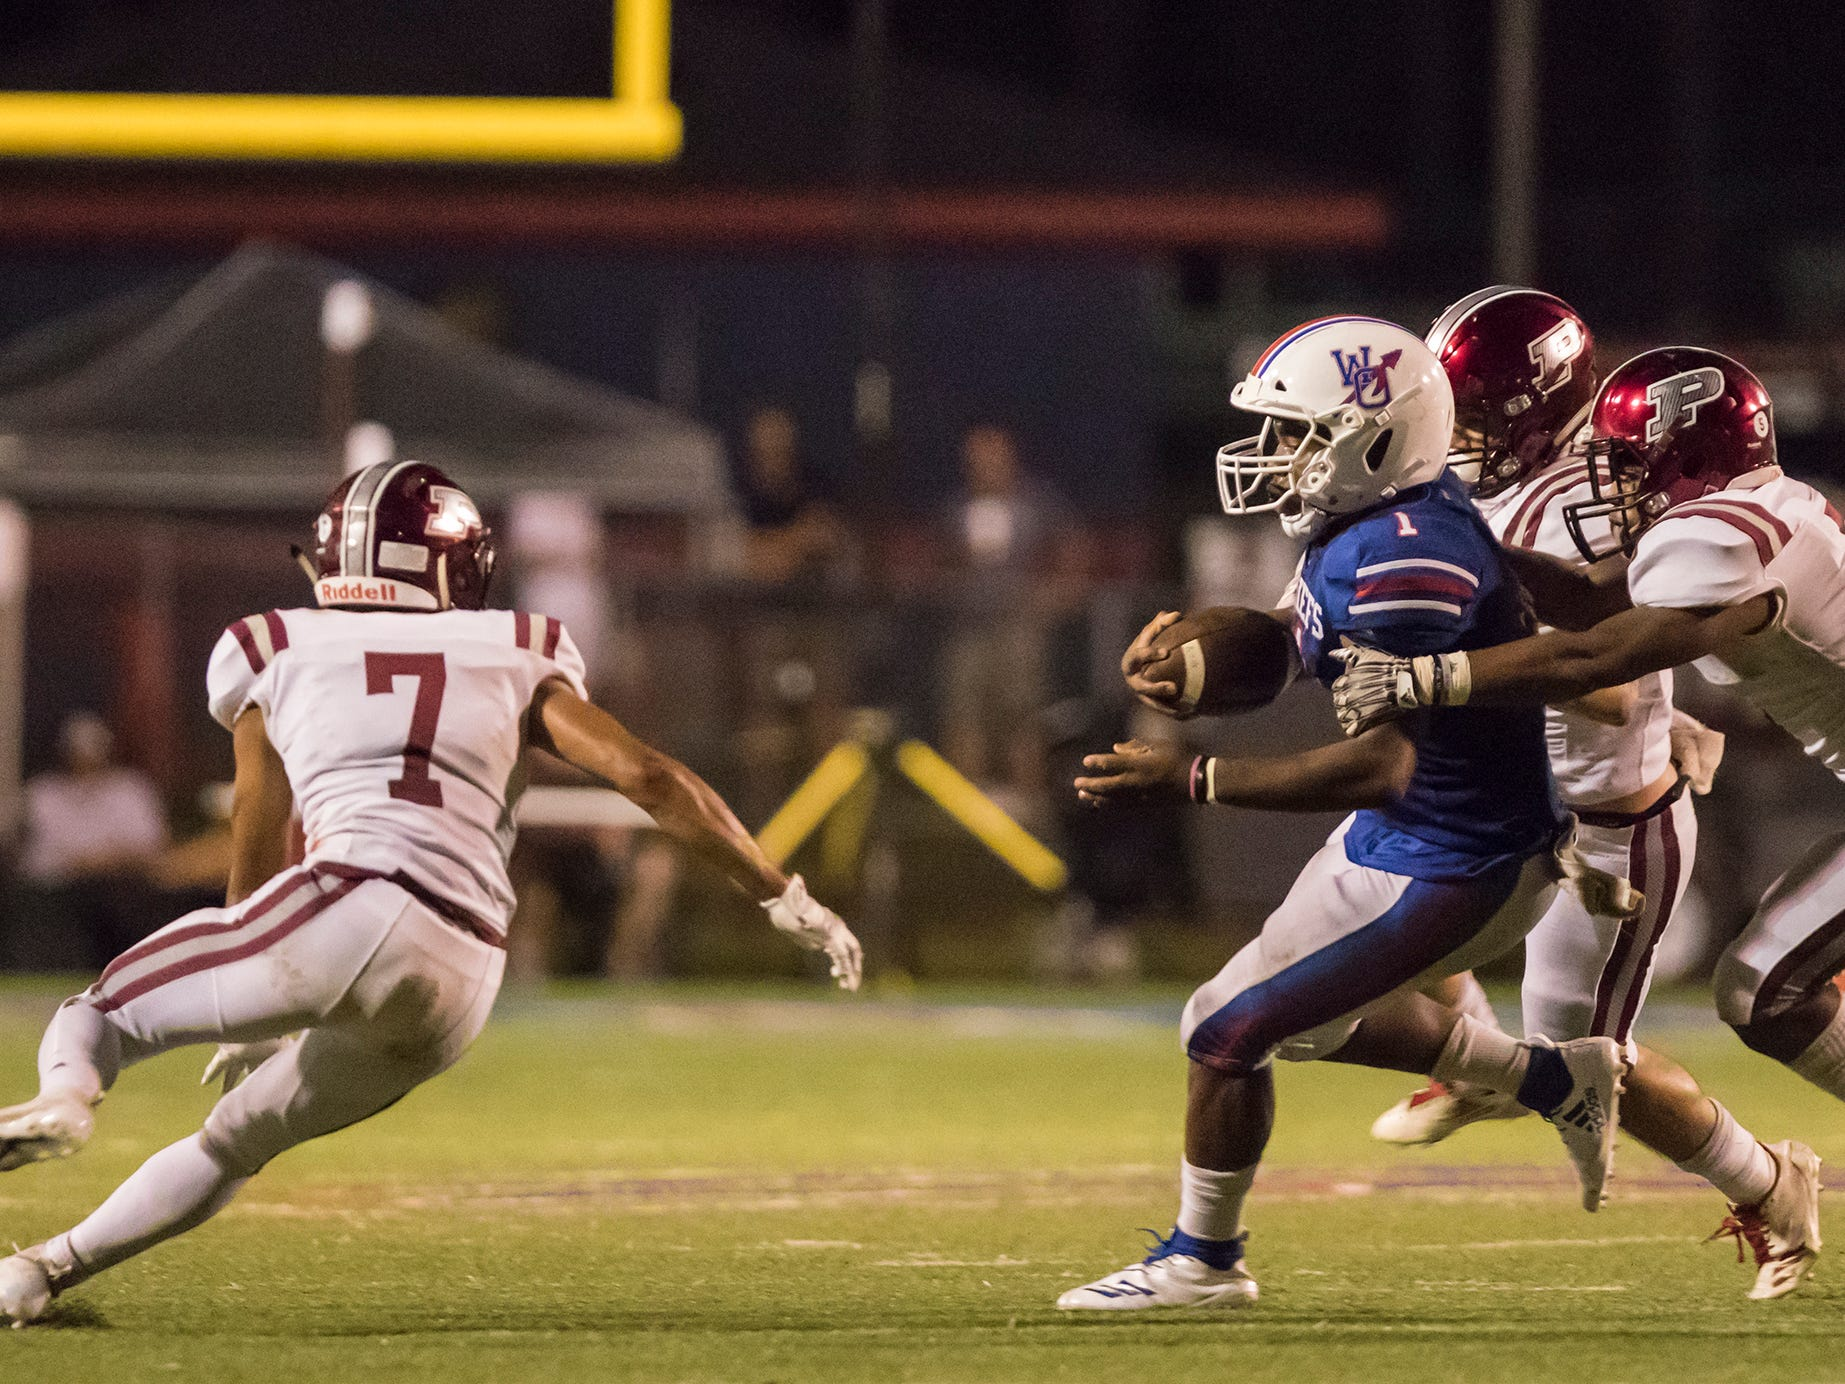 West Ouachita fell to Pineville 45-23 at West Ouachita High School in West Monroe, La. on Sept 14.